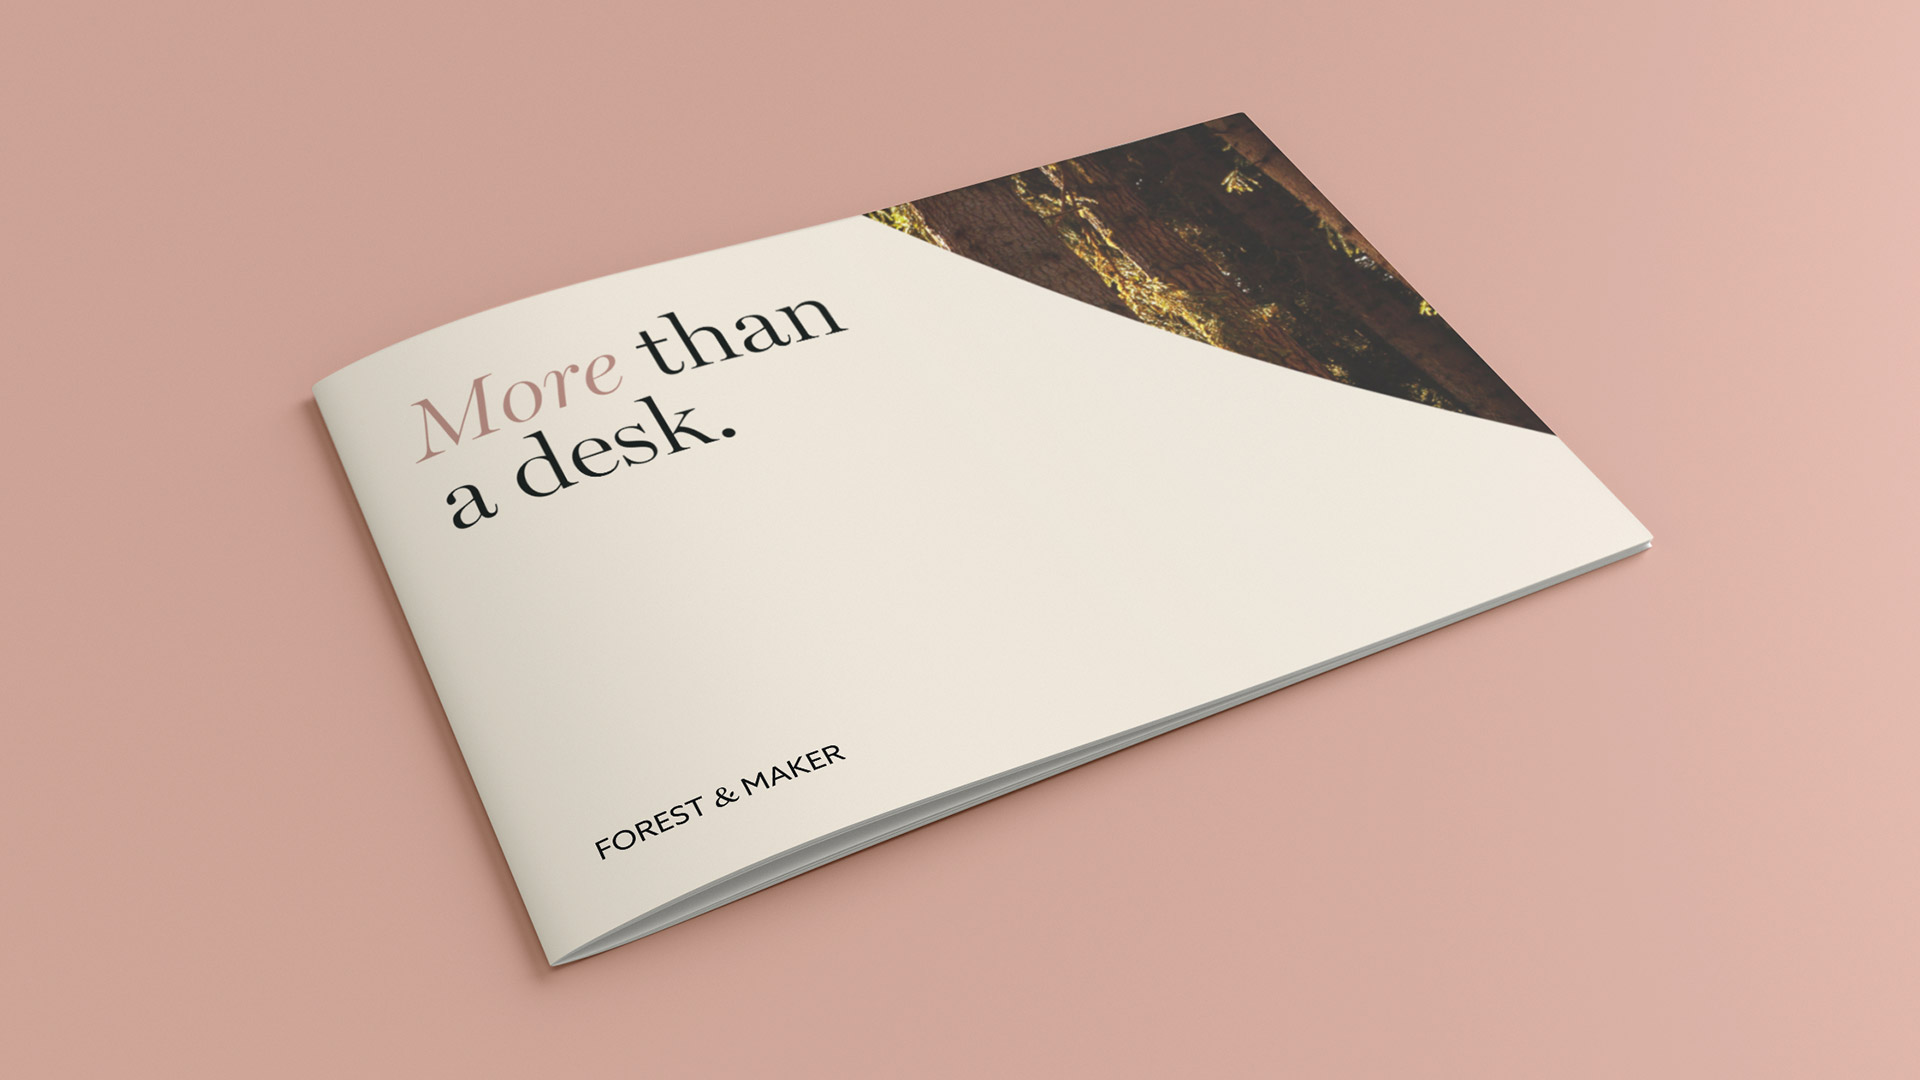 Forest & Maker: More than a desk